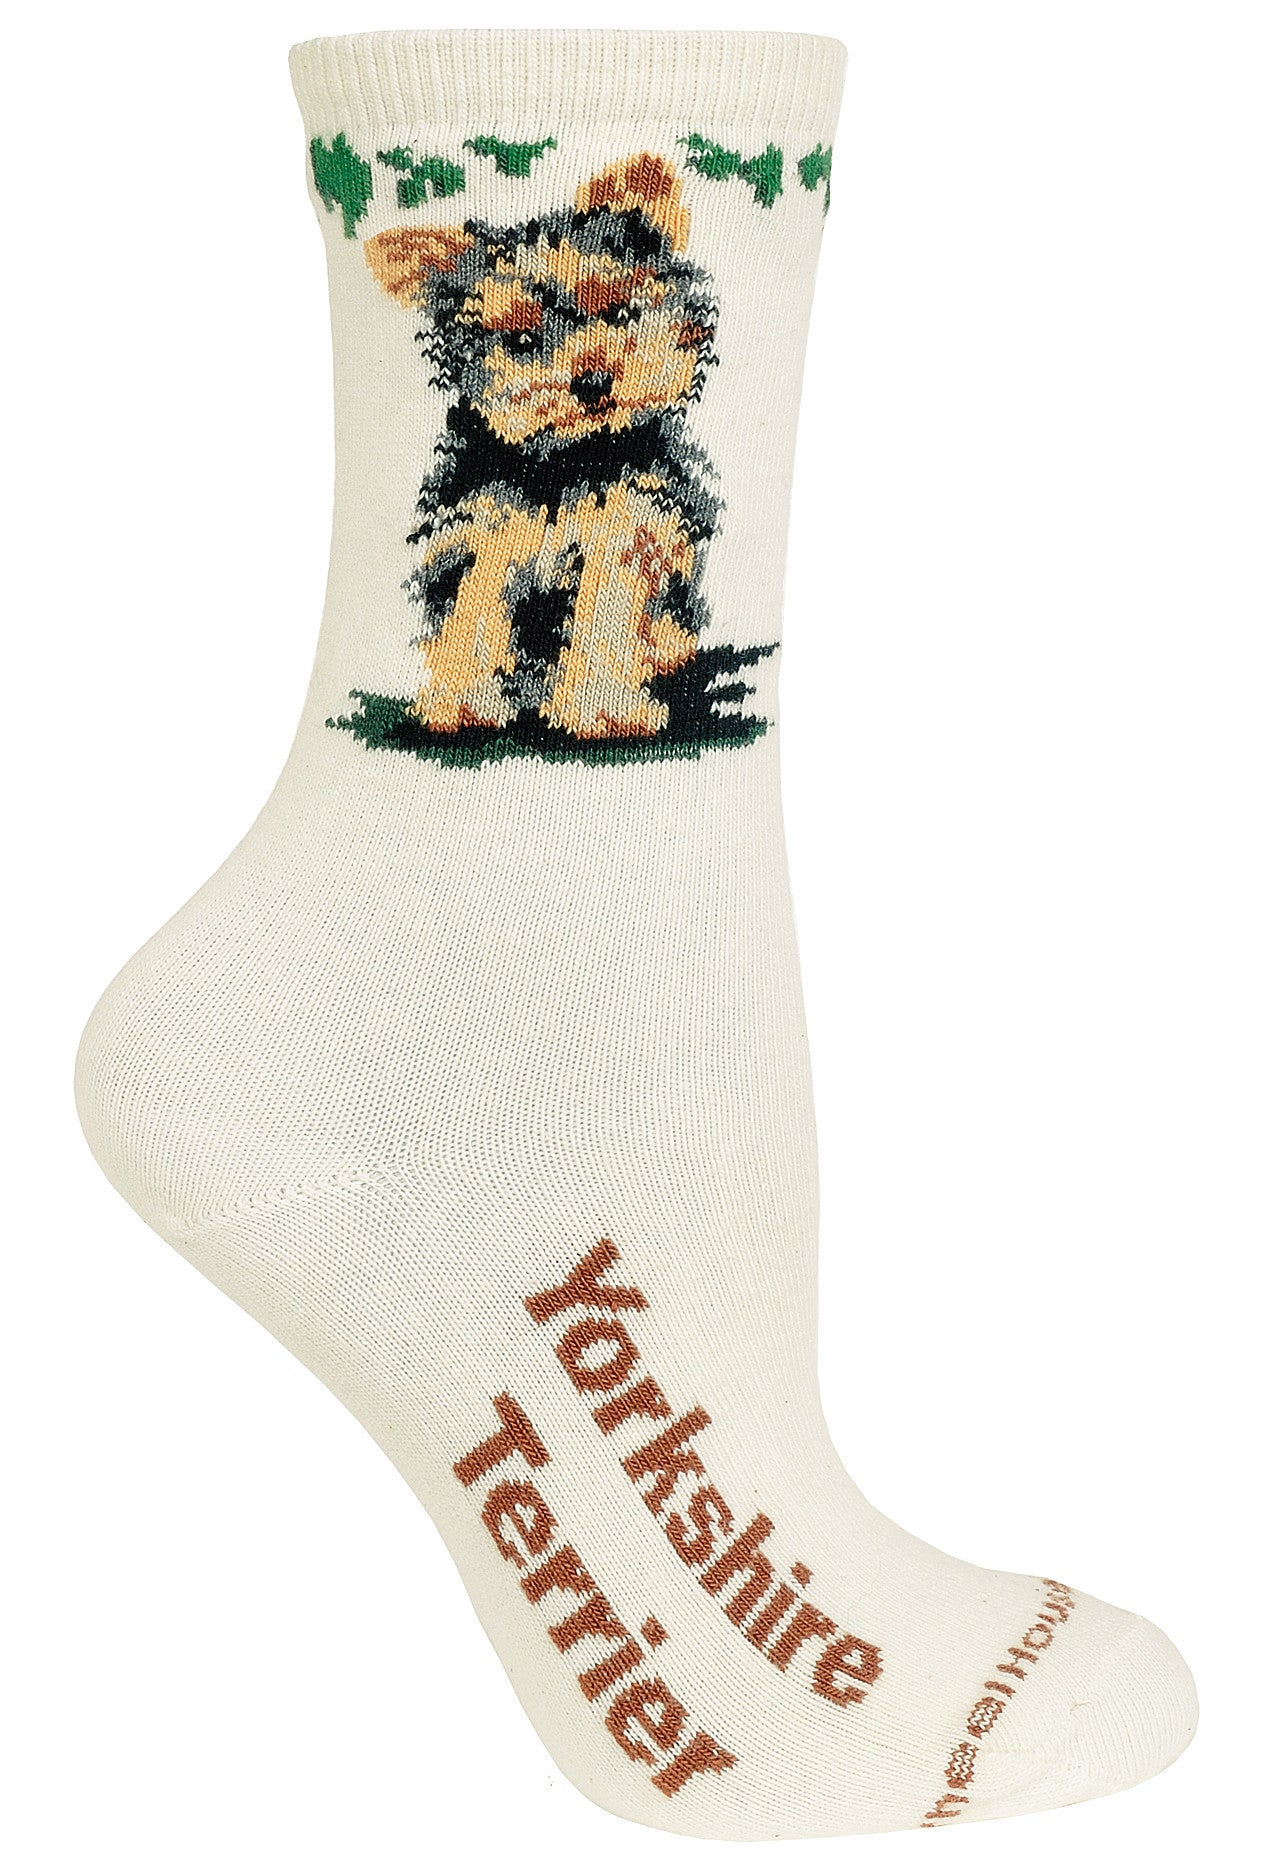 Puppy Cut Yorkshire Terrier On Natural Crew Socks Wheel House Designs